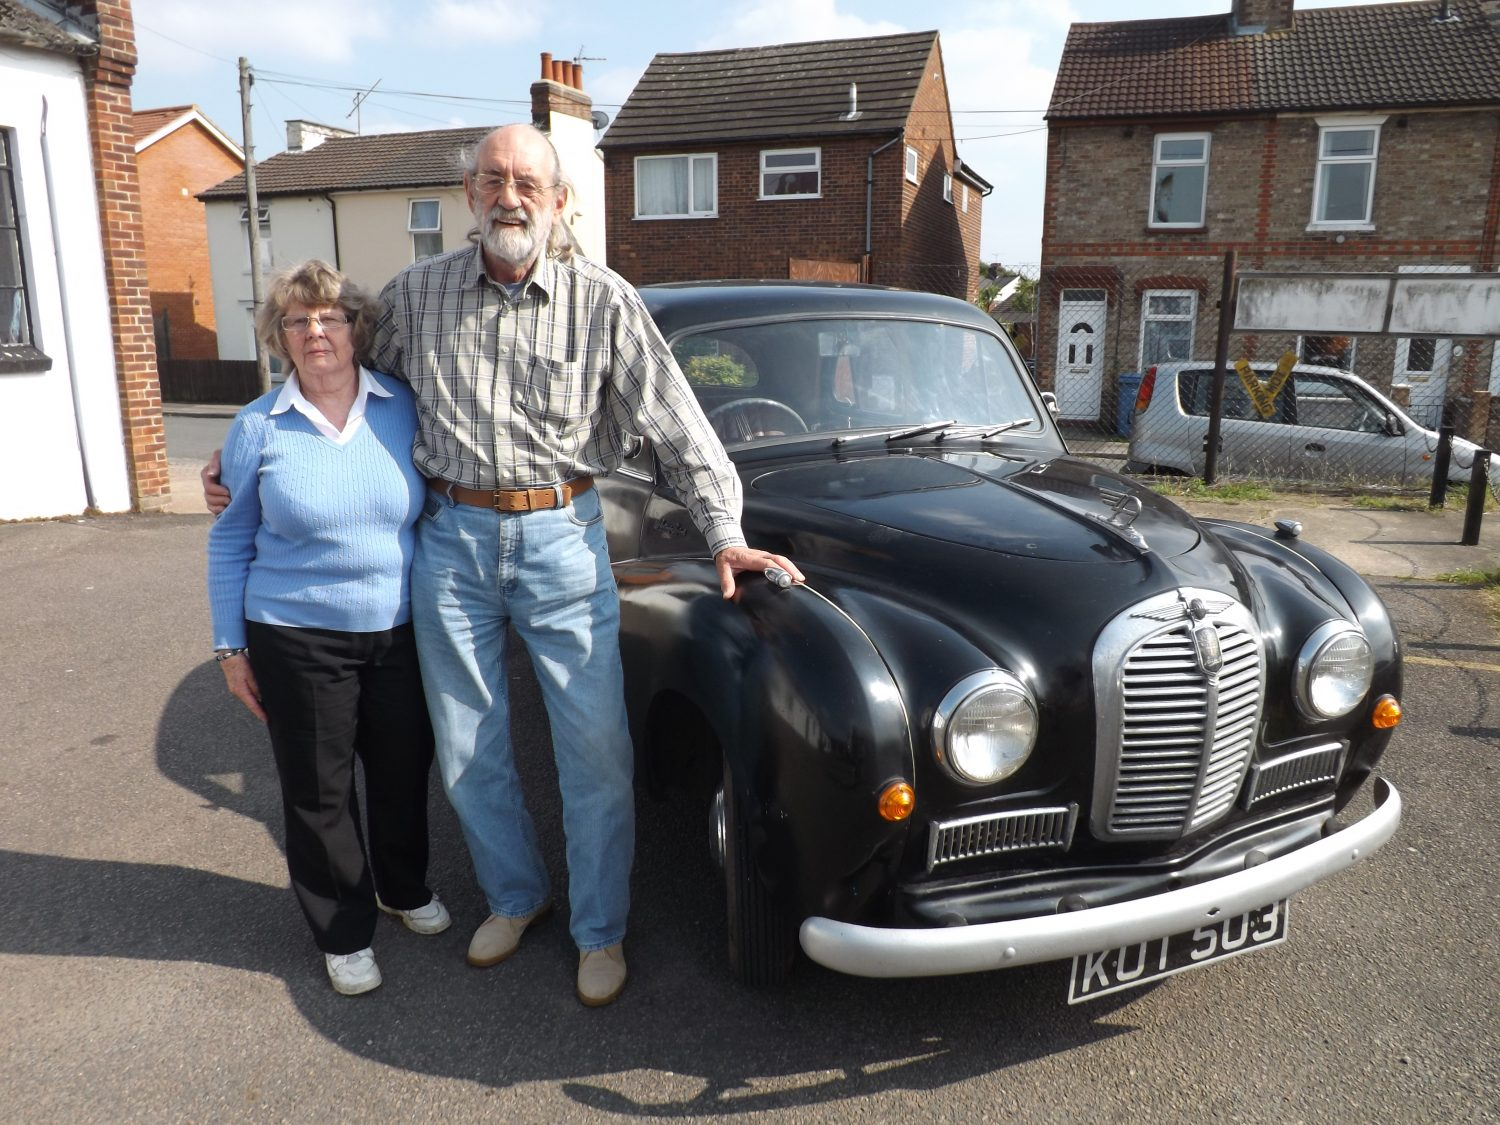 Mr and Mrs Smith at Bridge Classic Cars